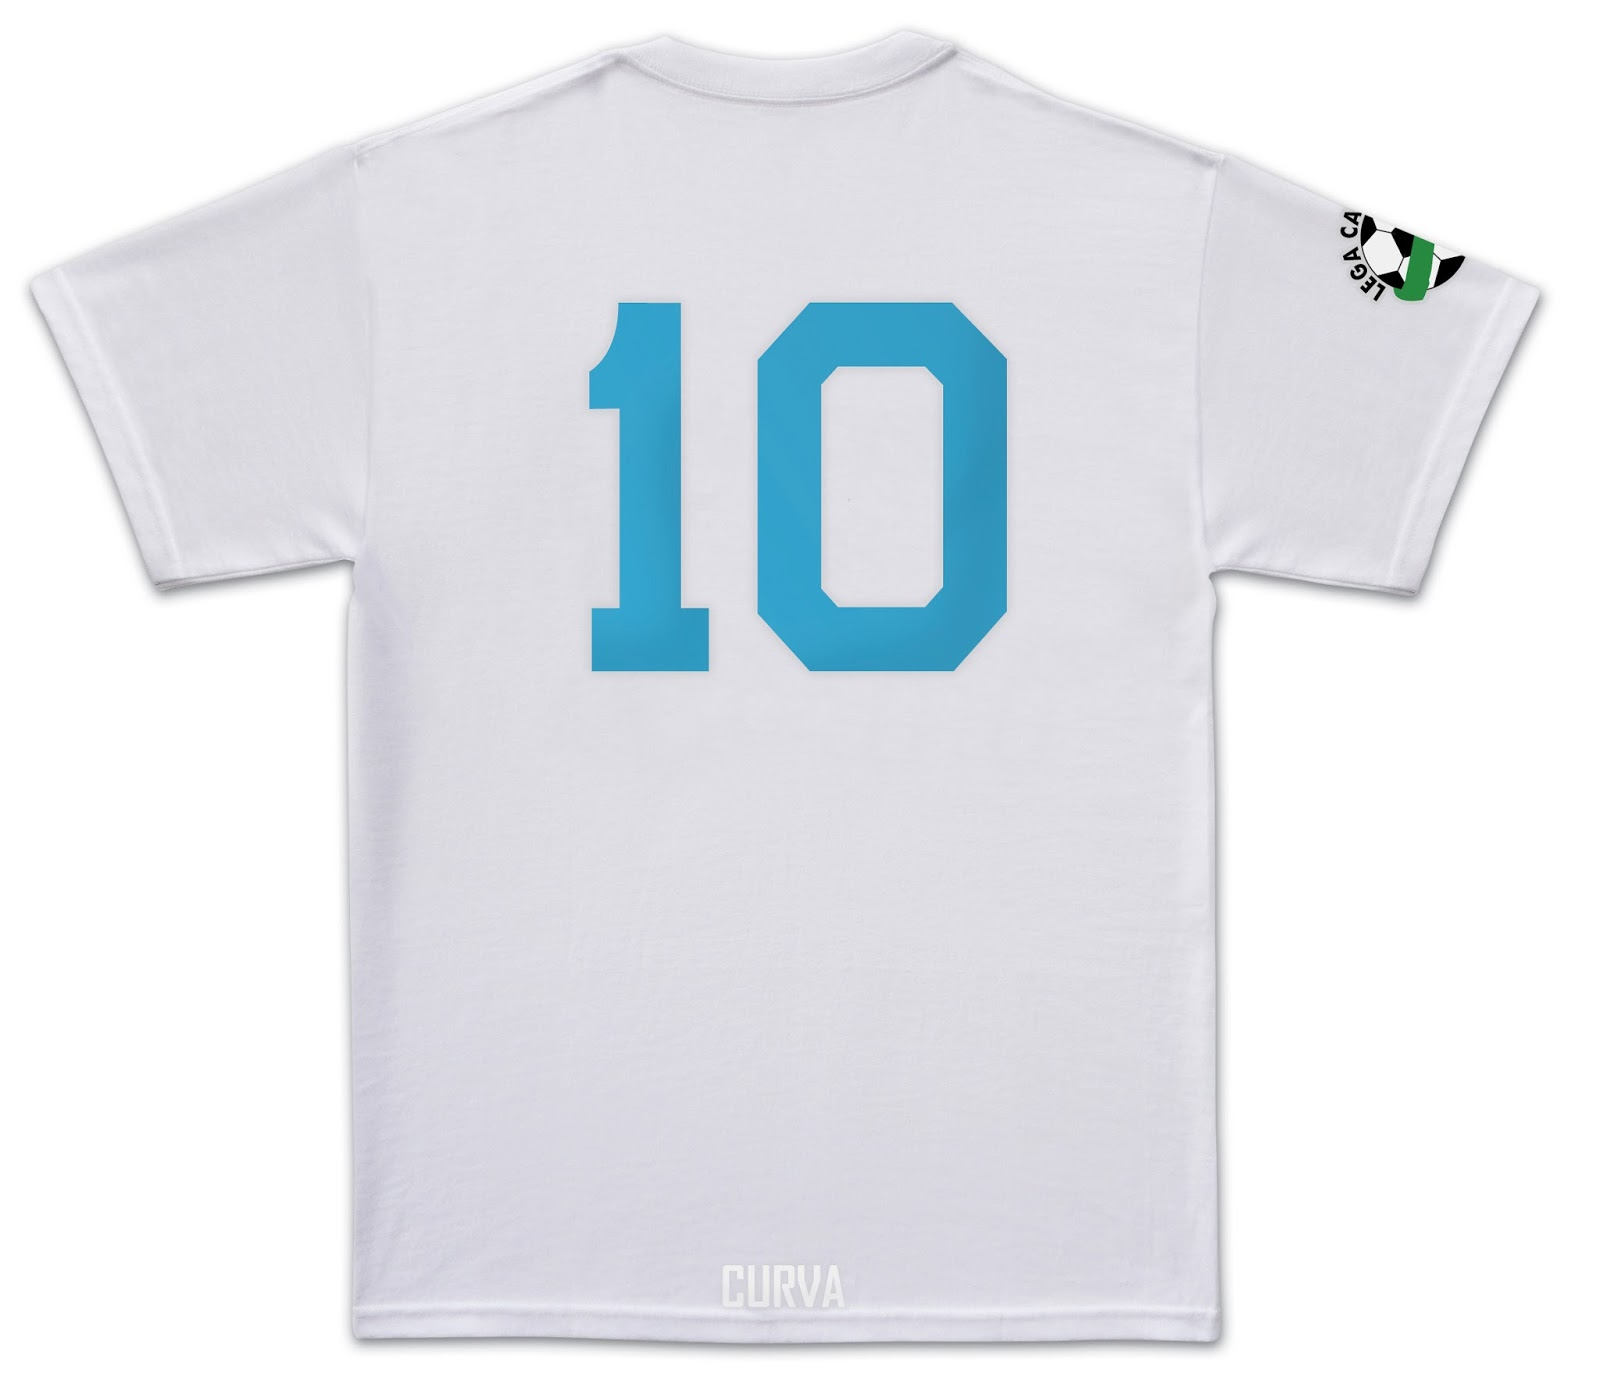 886114ca0 This shirt is available to purchase for £38.00 ref curva012. A white 100%  cotton T-shirt in small